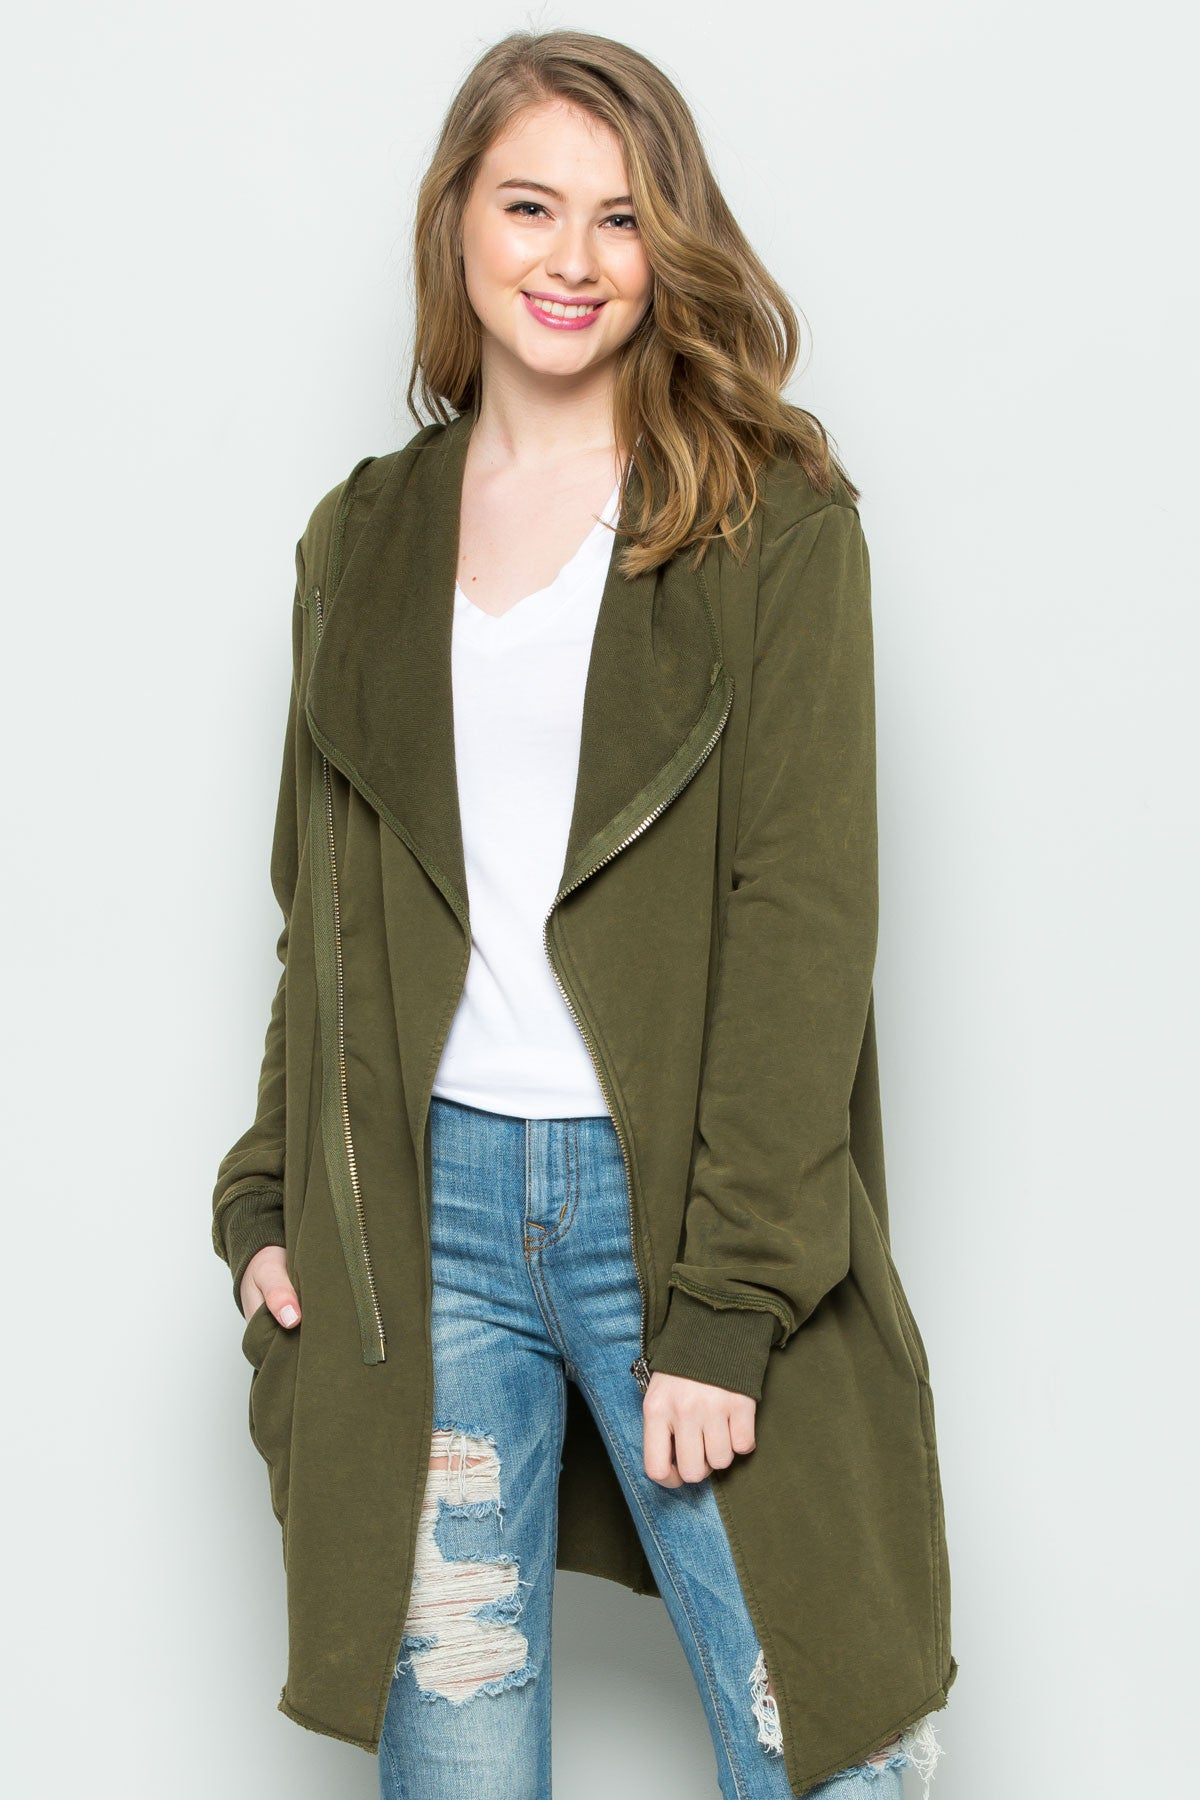 Hooded Asymmetric Zip Up Acid Wash Jacket in Military Green - Jacket - My Yuccie - 6